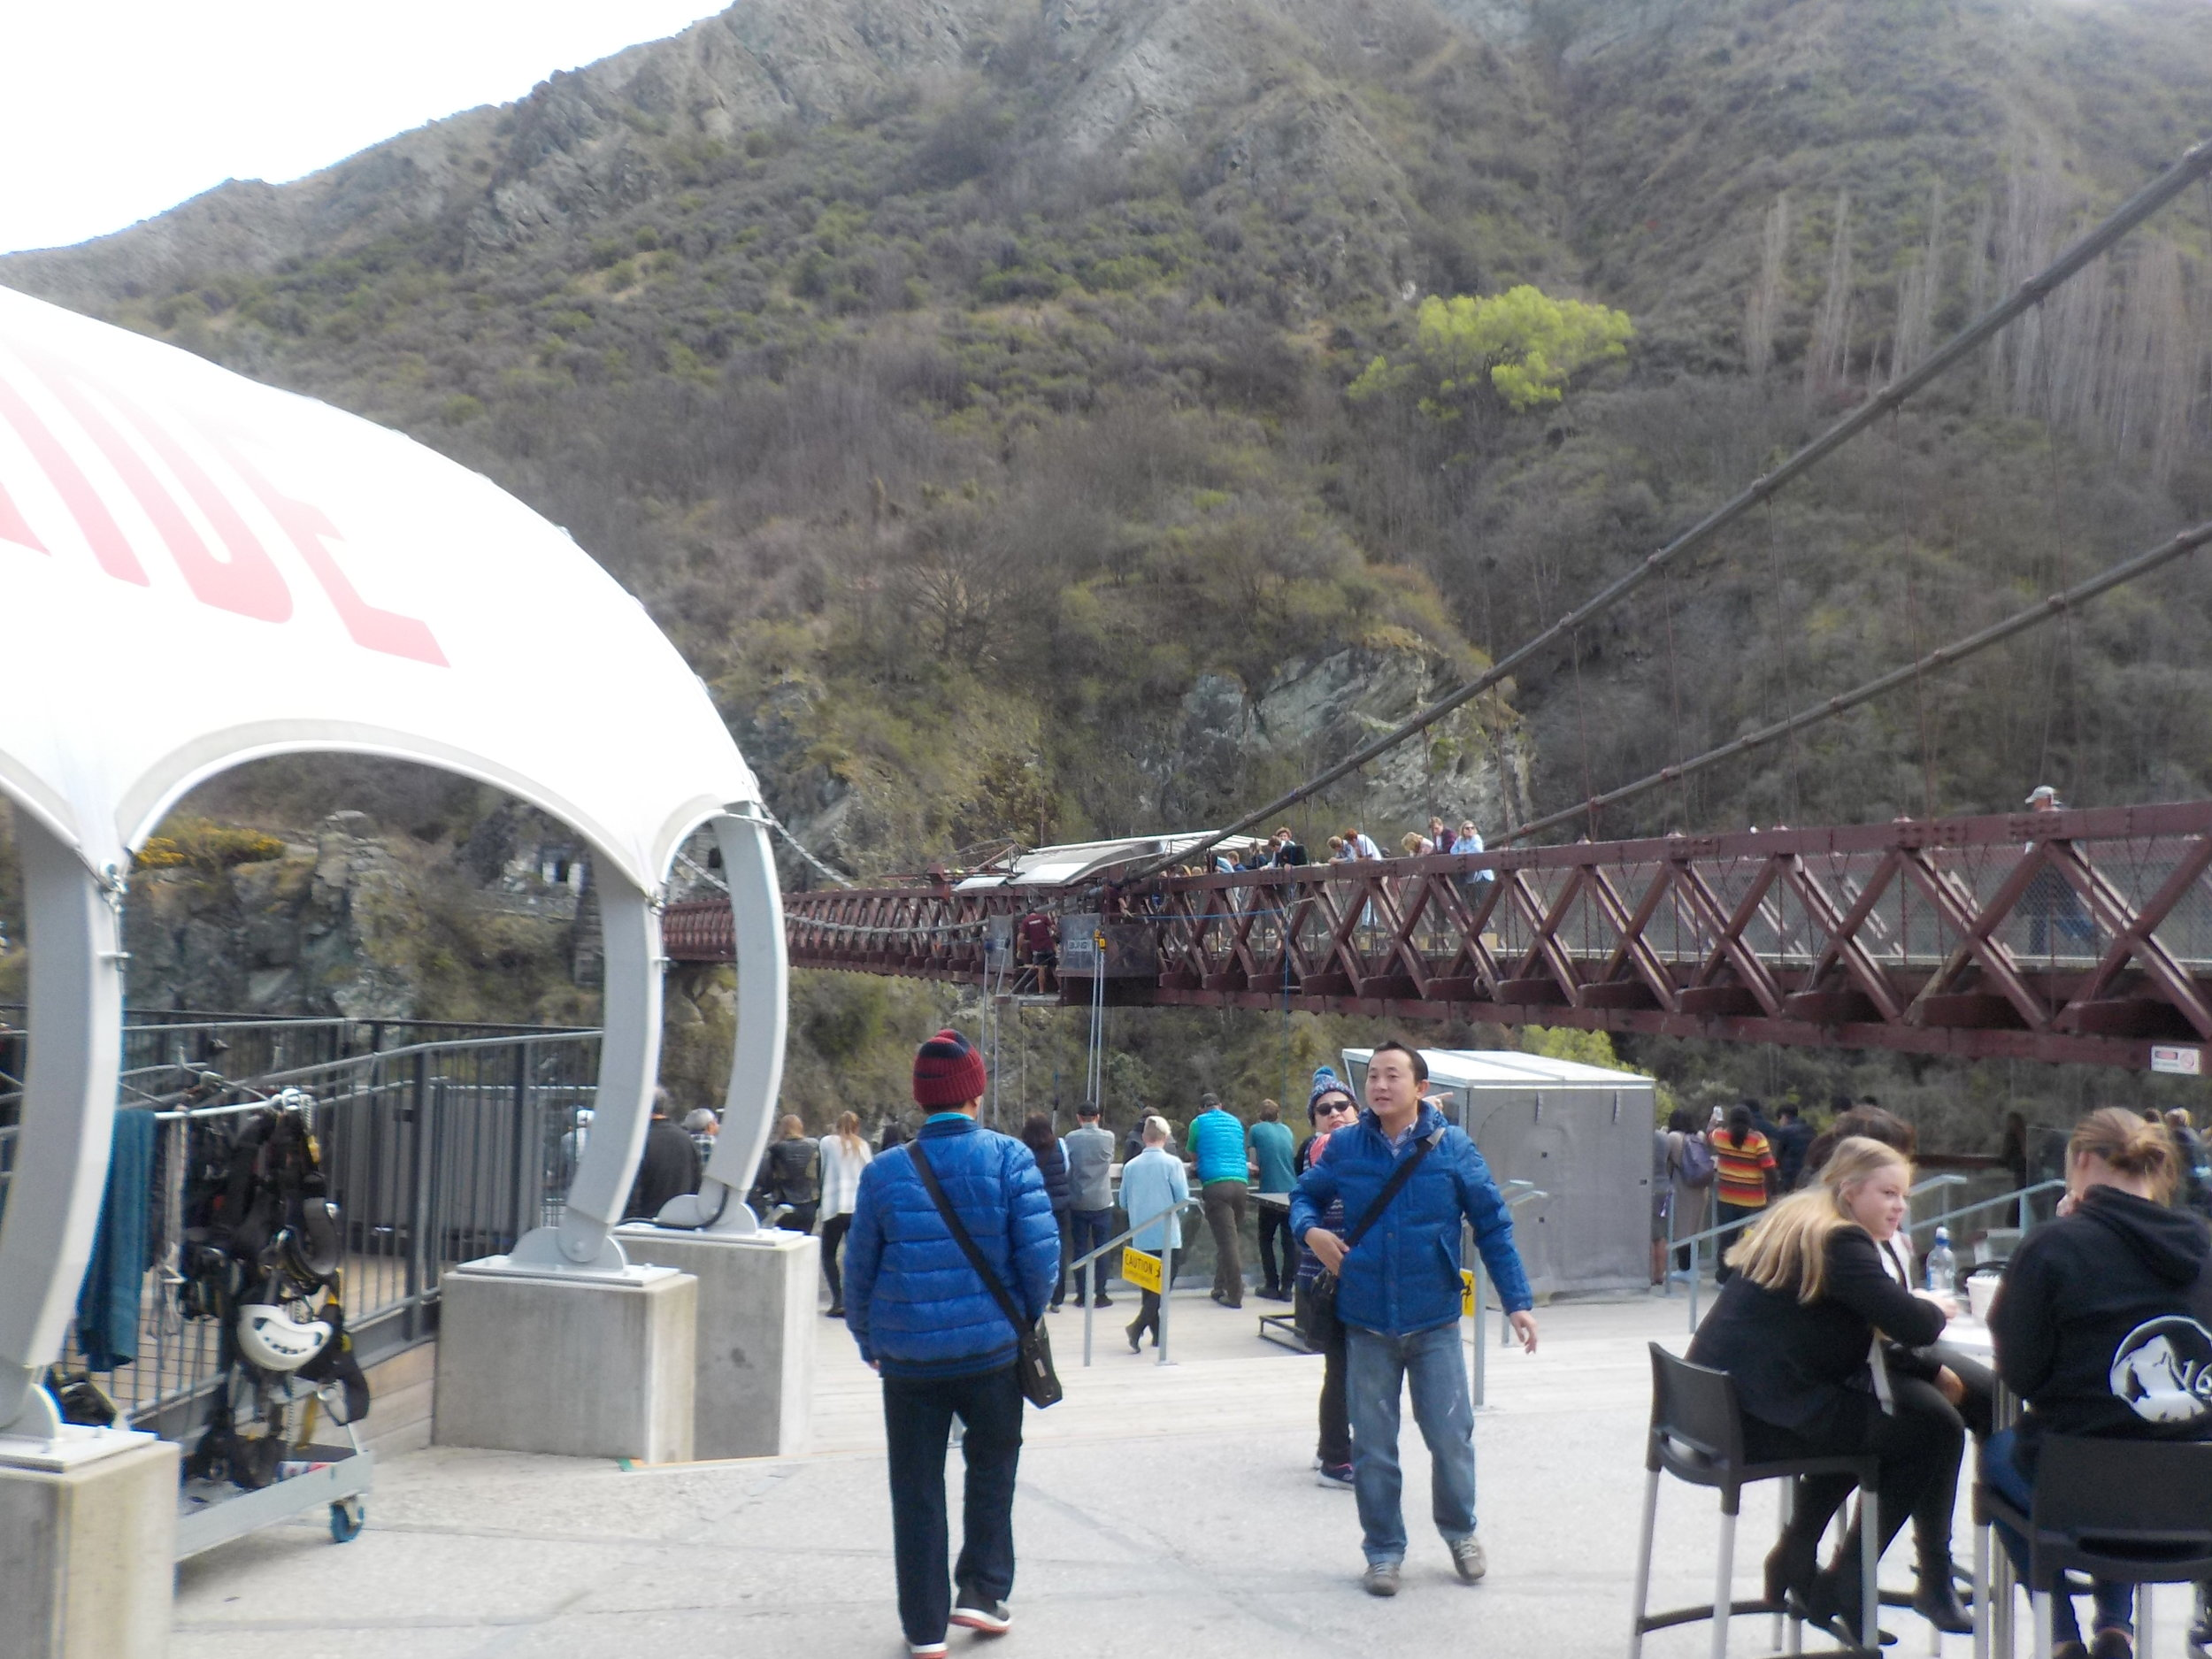 Viewing area of the world's first commercial bungy